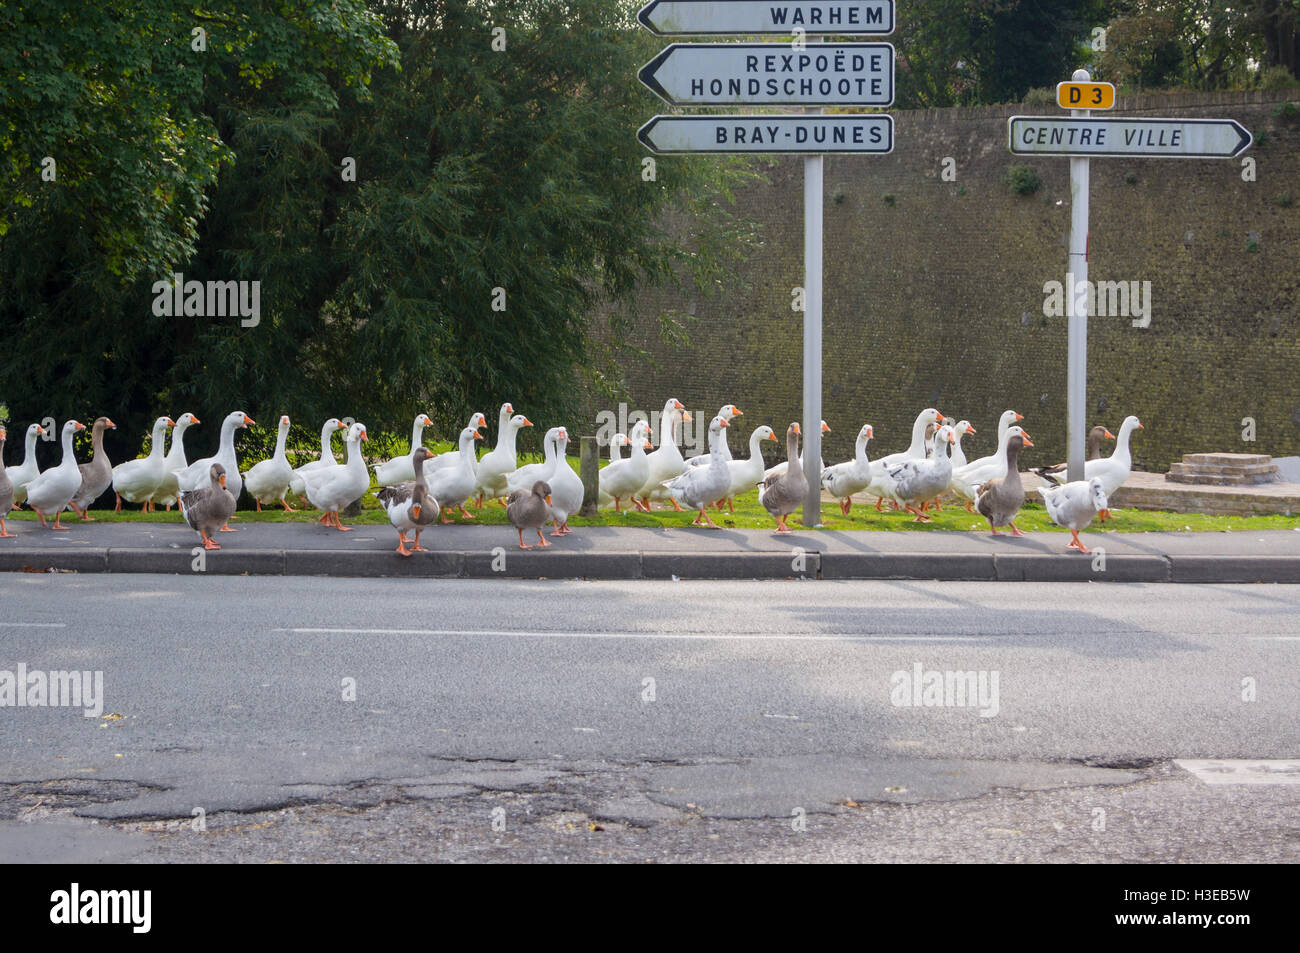 a-flock-of-domestic-and-toulouse-geese-crossing-the-road-and-stopping-H3EB5W.jpg